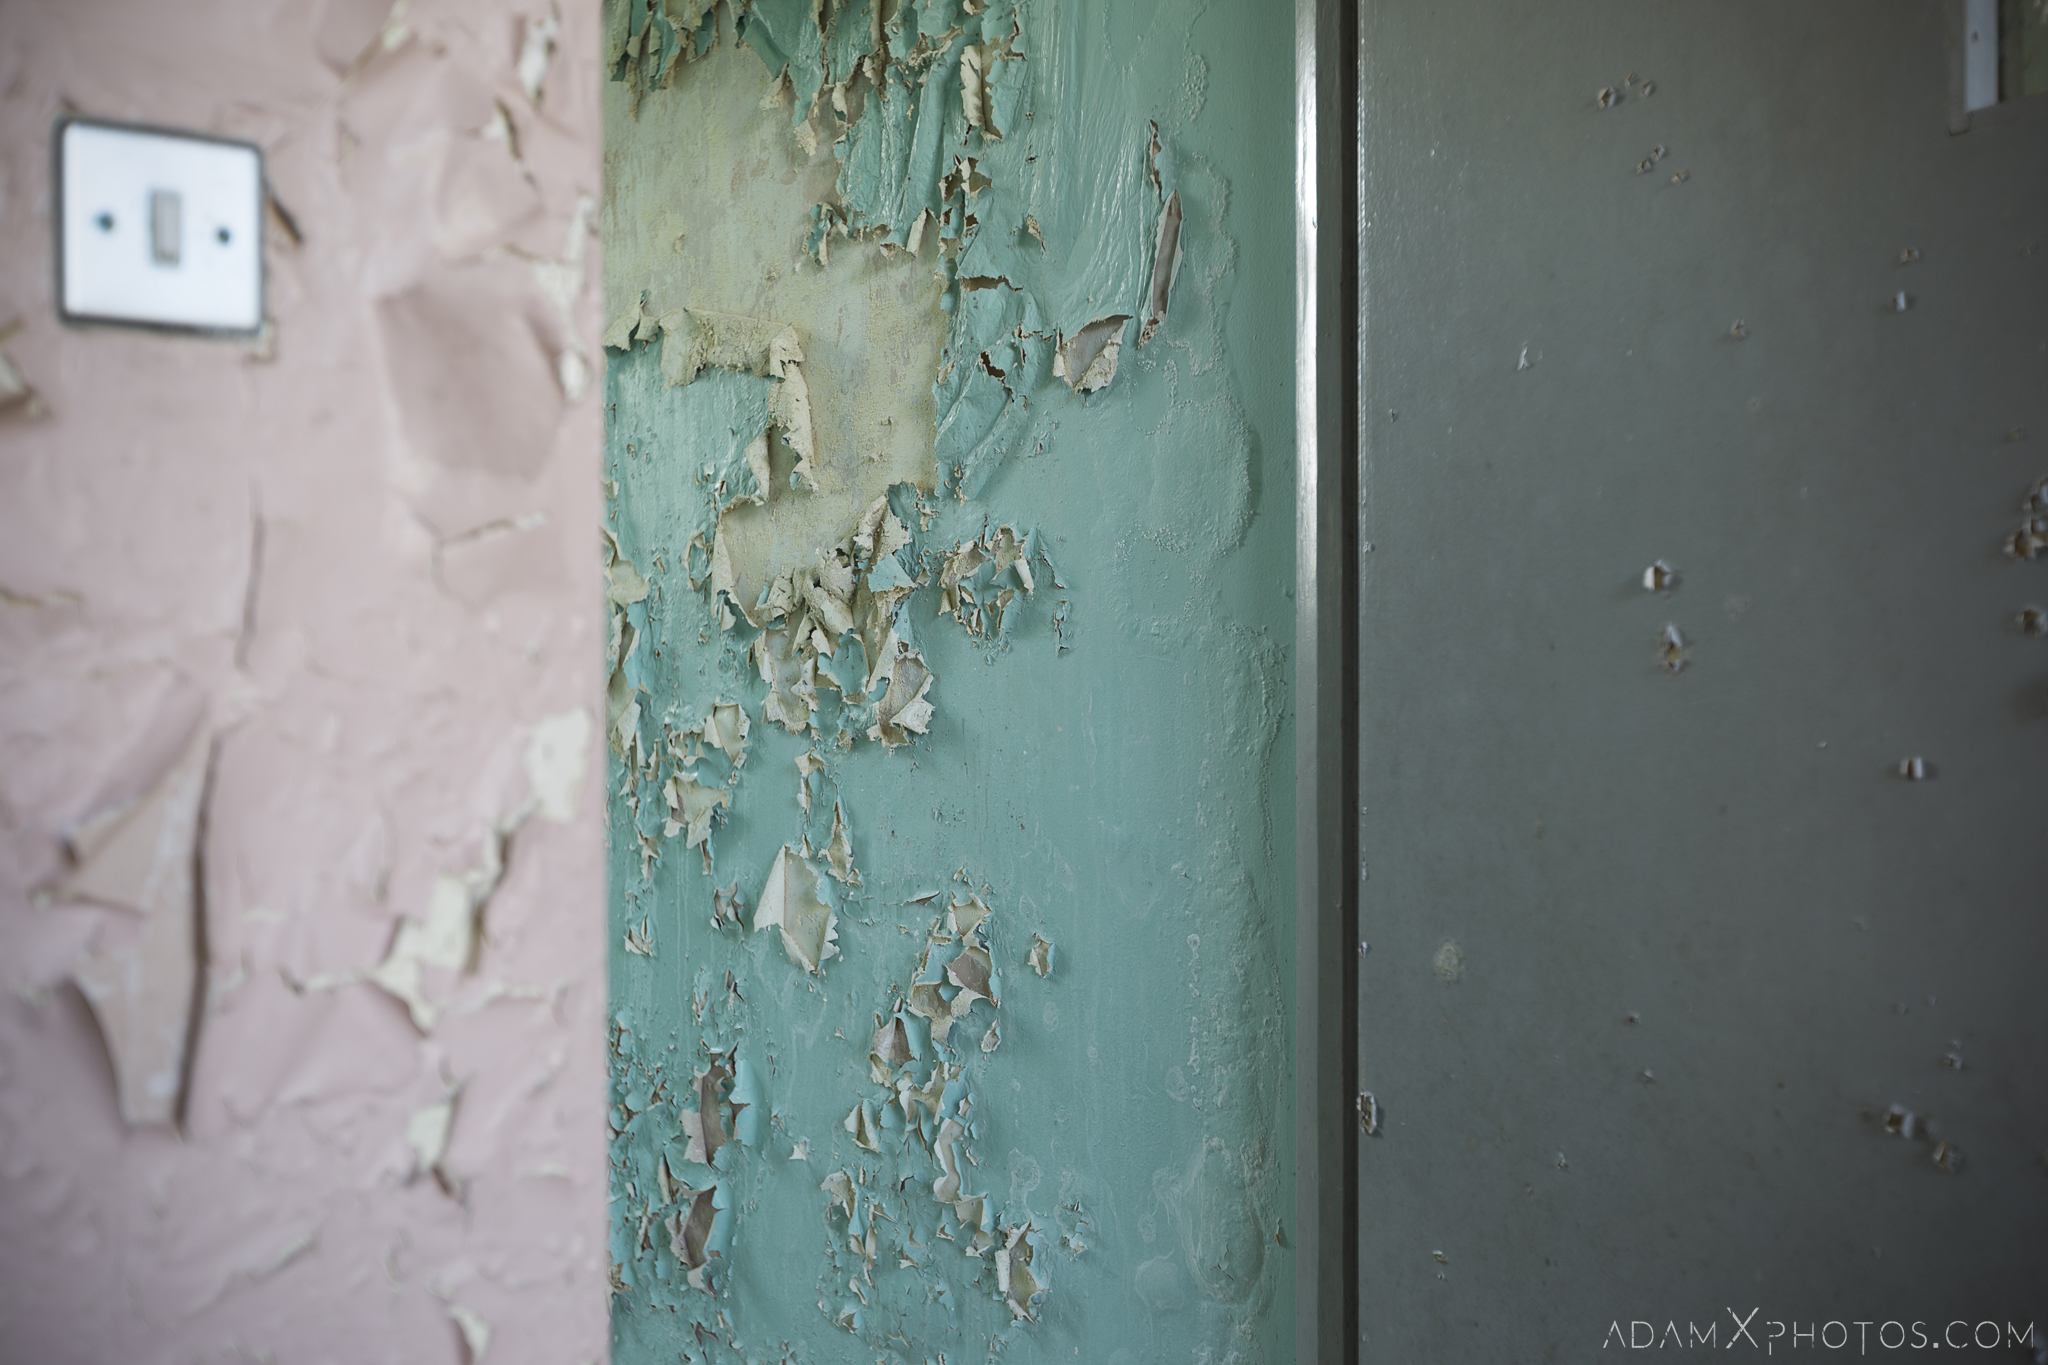 peeling paint colours colors Connacht District Lunatic Asylum St Brigid's Hospital Adam X Urbex Urban Exploration Ireland Ballinasloe Access 2017 Abandoned decay lost forgotten derelict location creepy haunting eerie